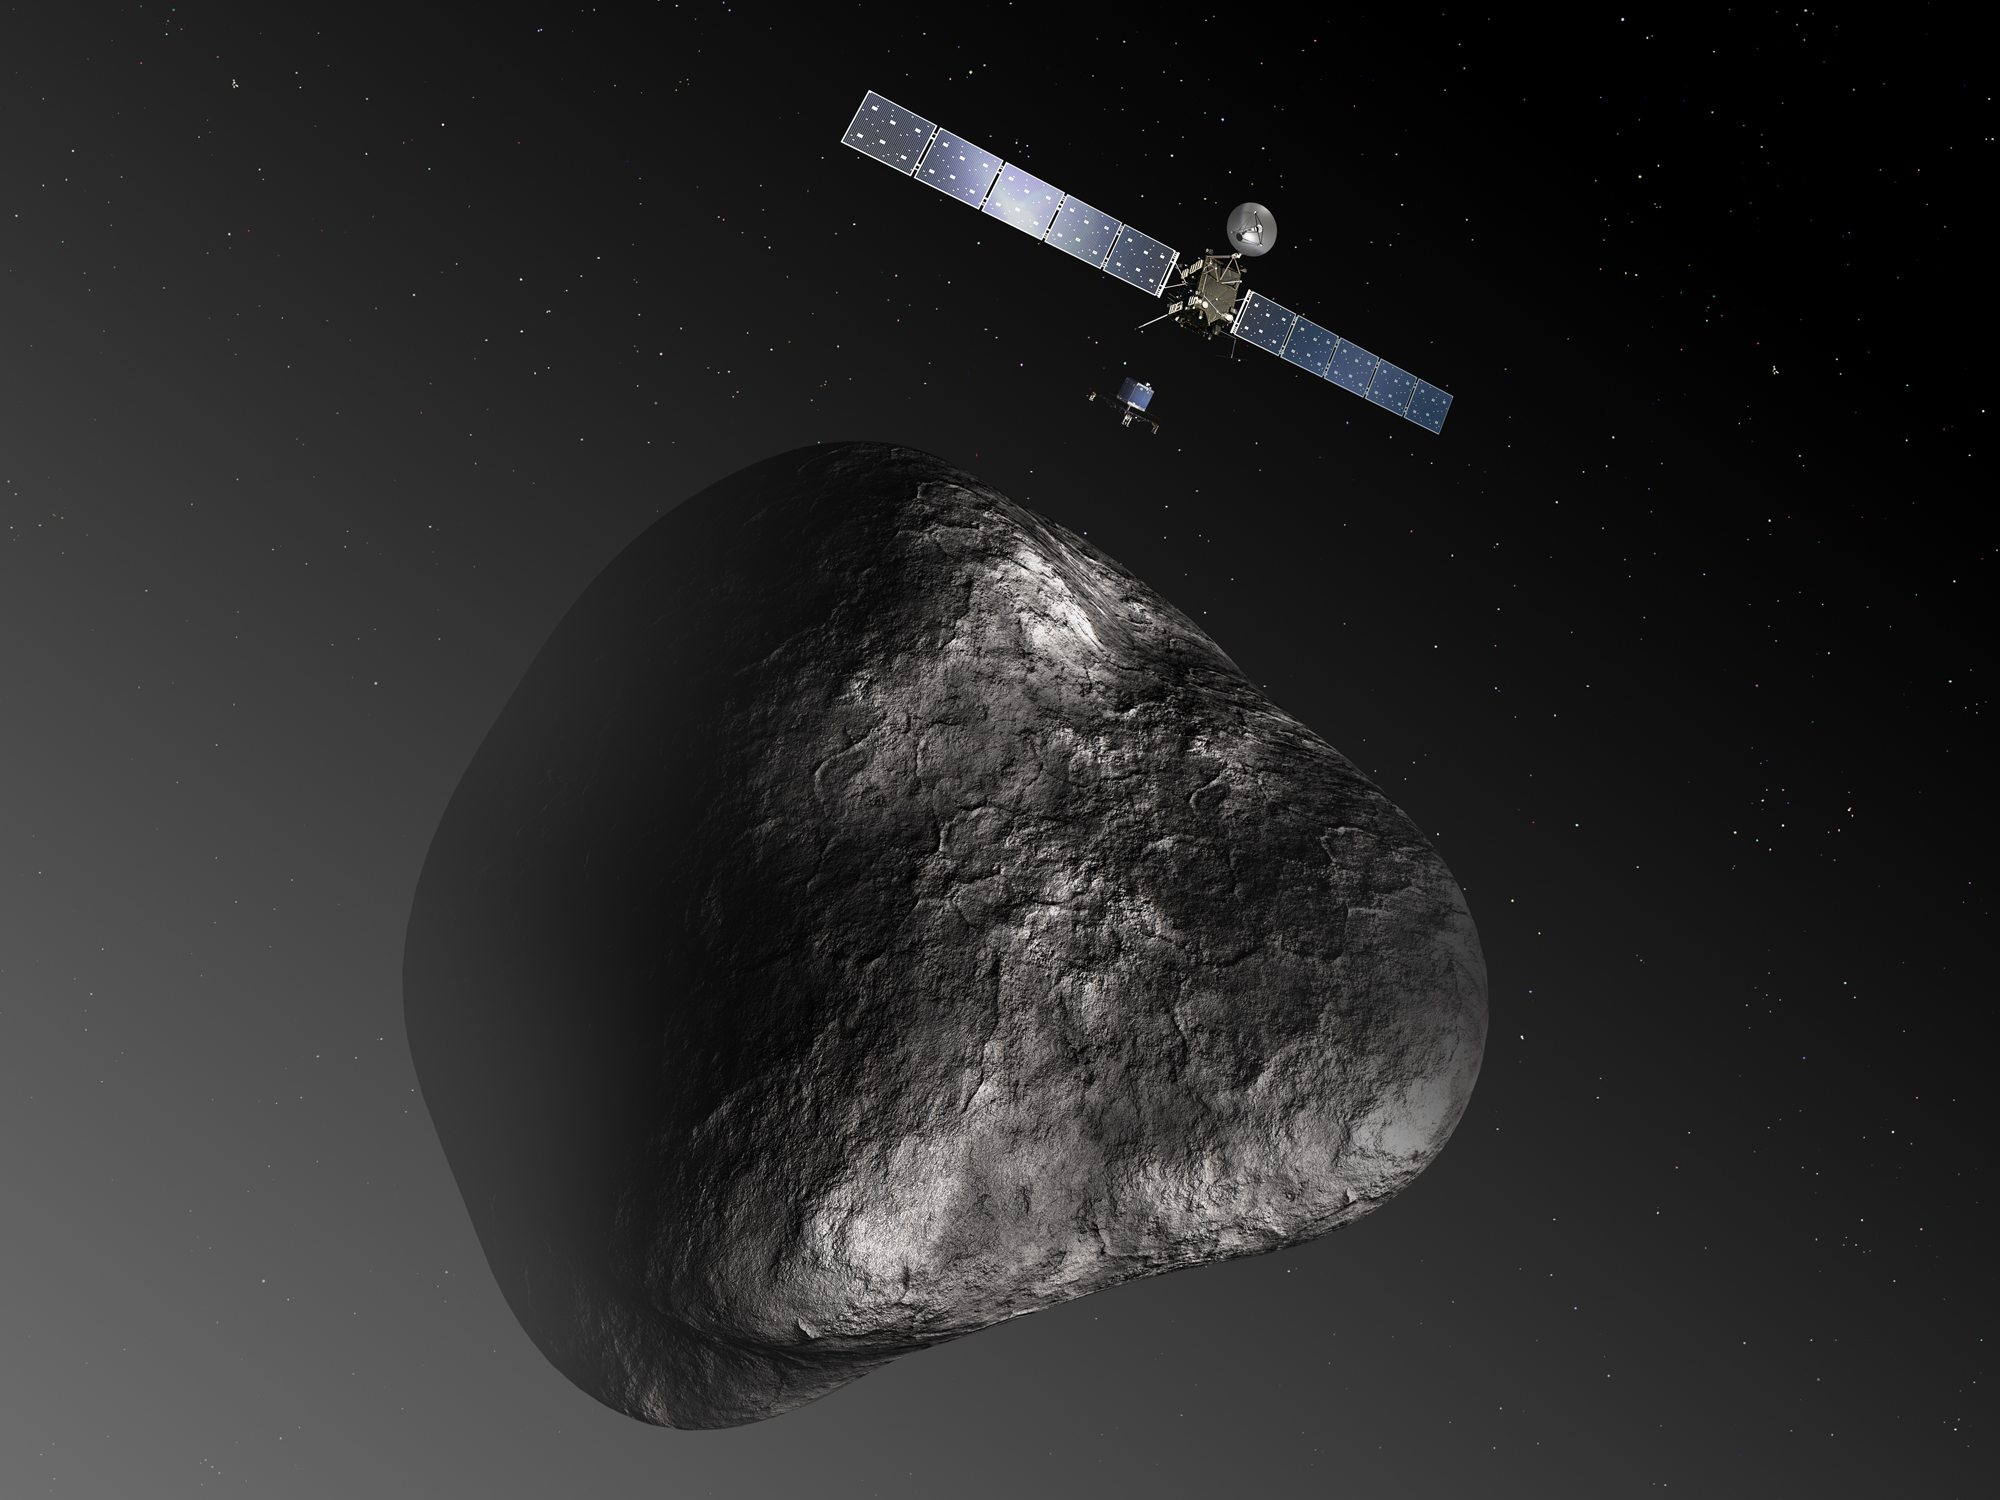 ESA Science & Technology: Rosetta and Philae at comet